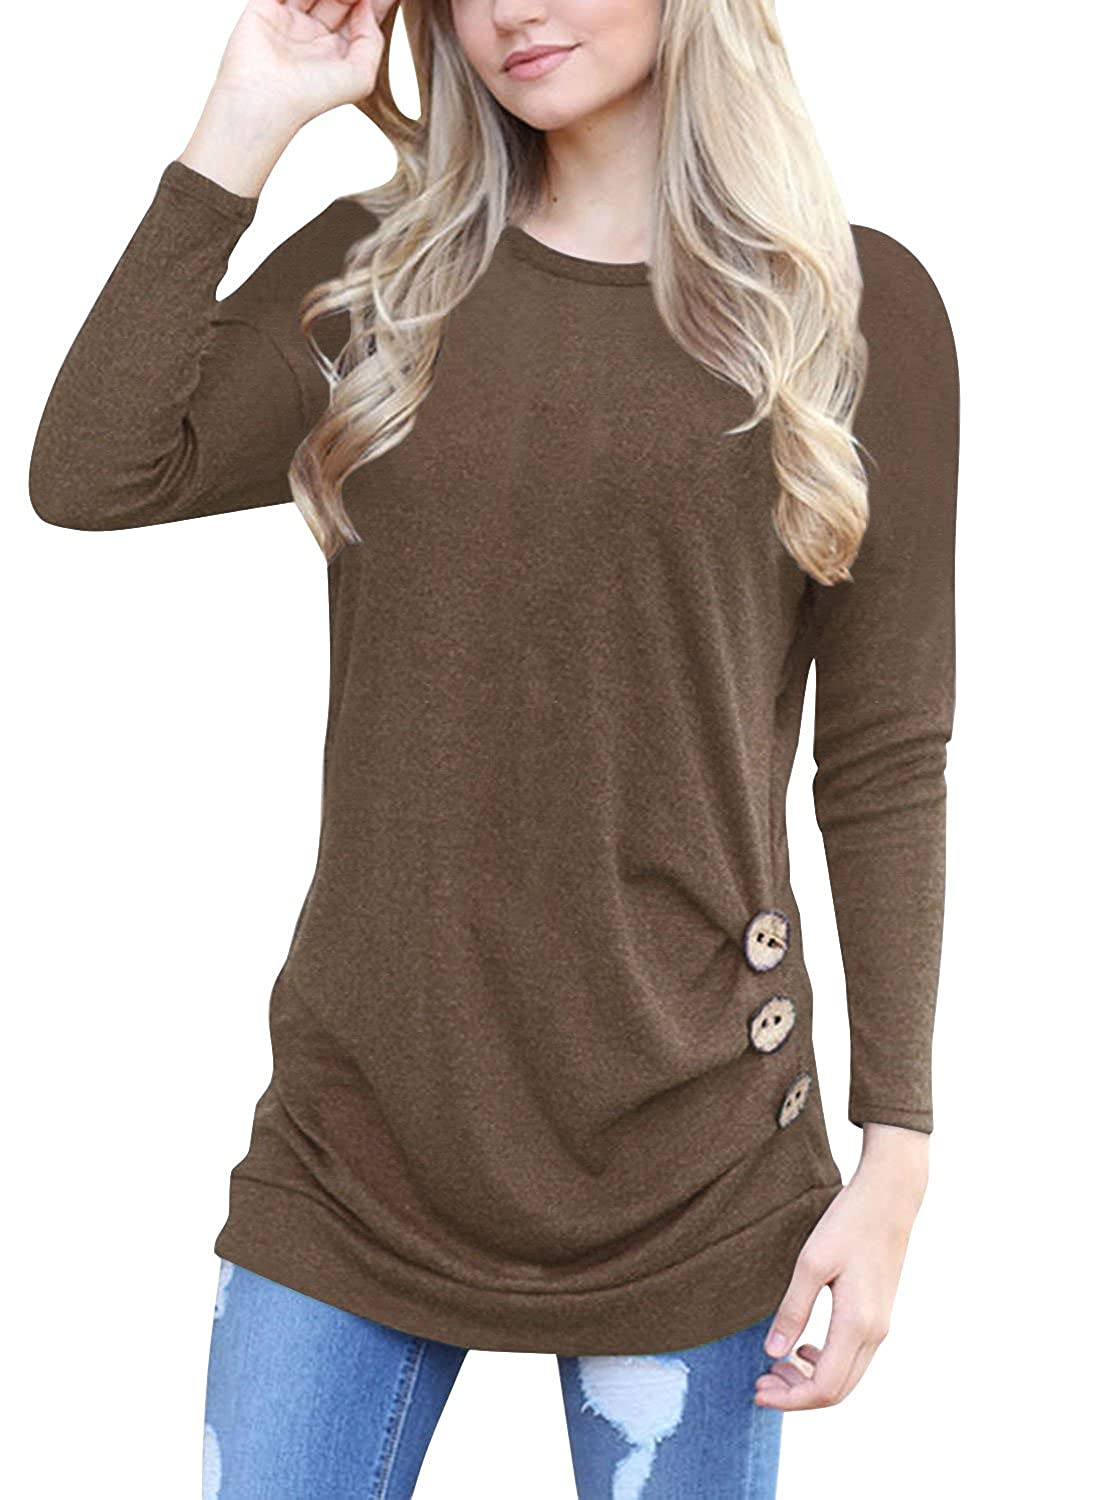 Women Casual Button Decor Loose Tunic T Shirt Cotton Blouse Tops